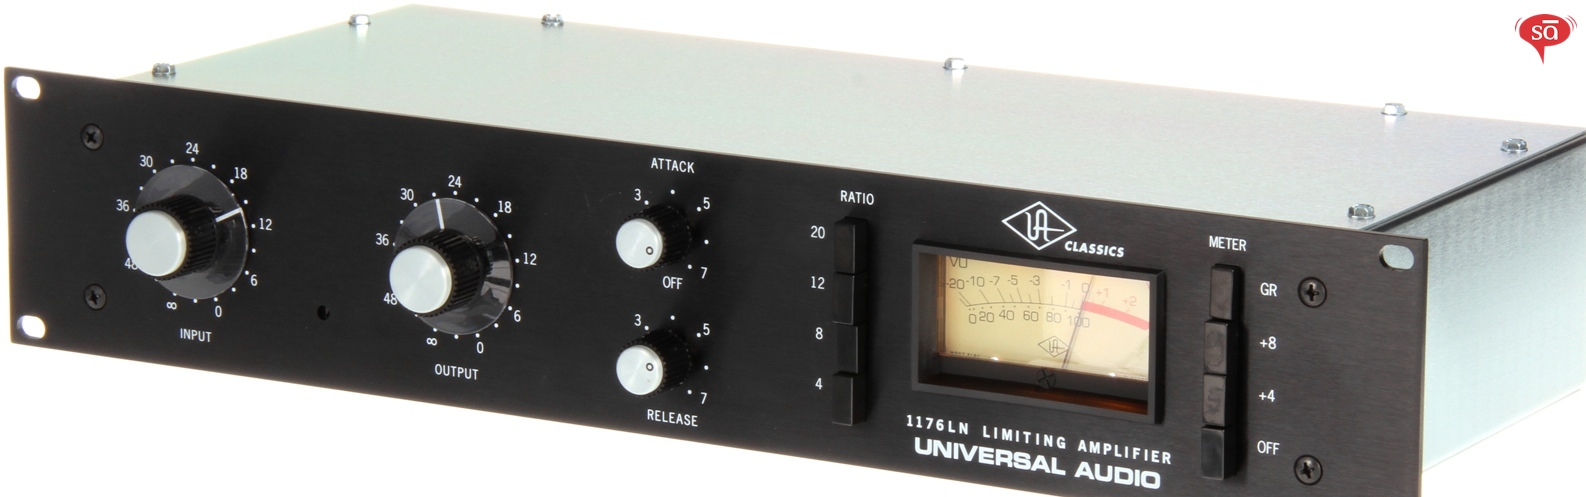 Universal Audio 1176LN Classic Limiting Amplifier ...